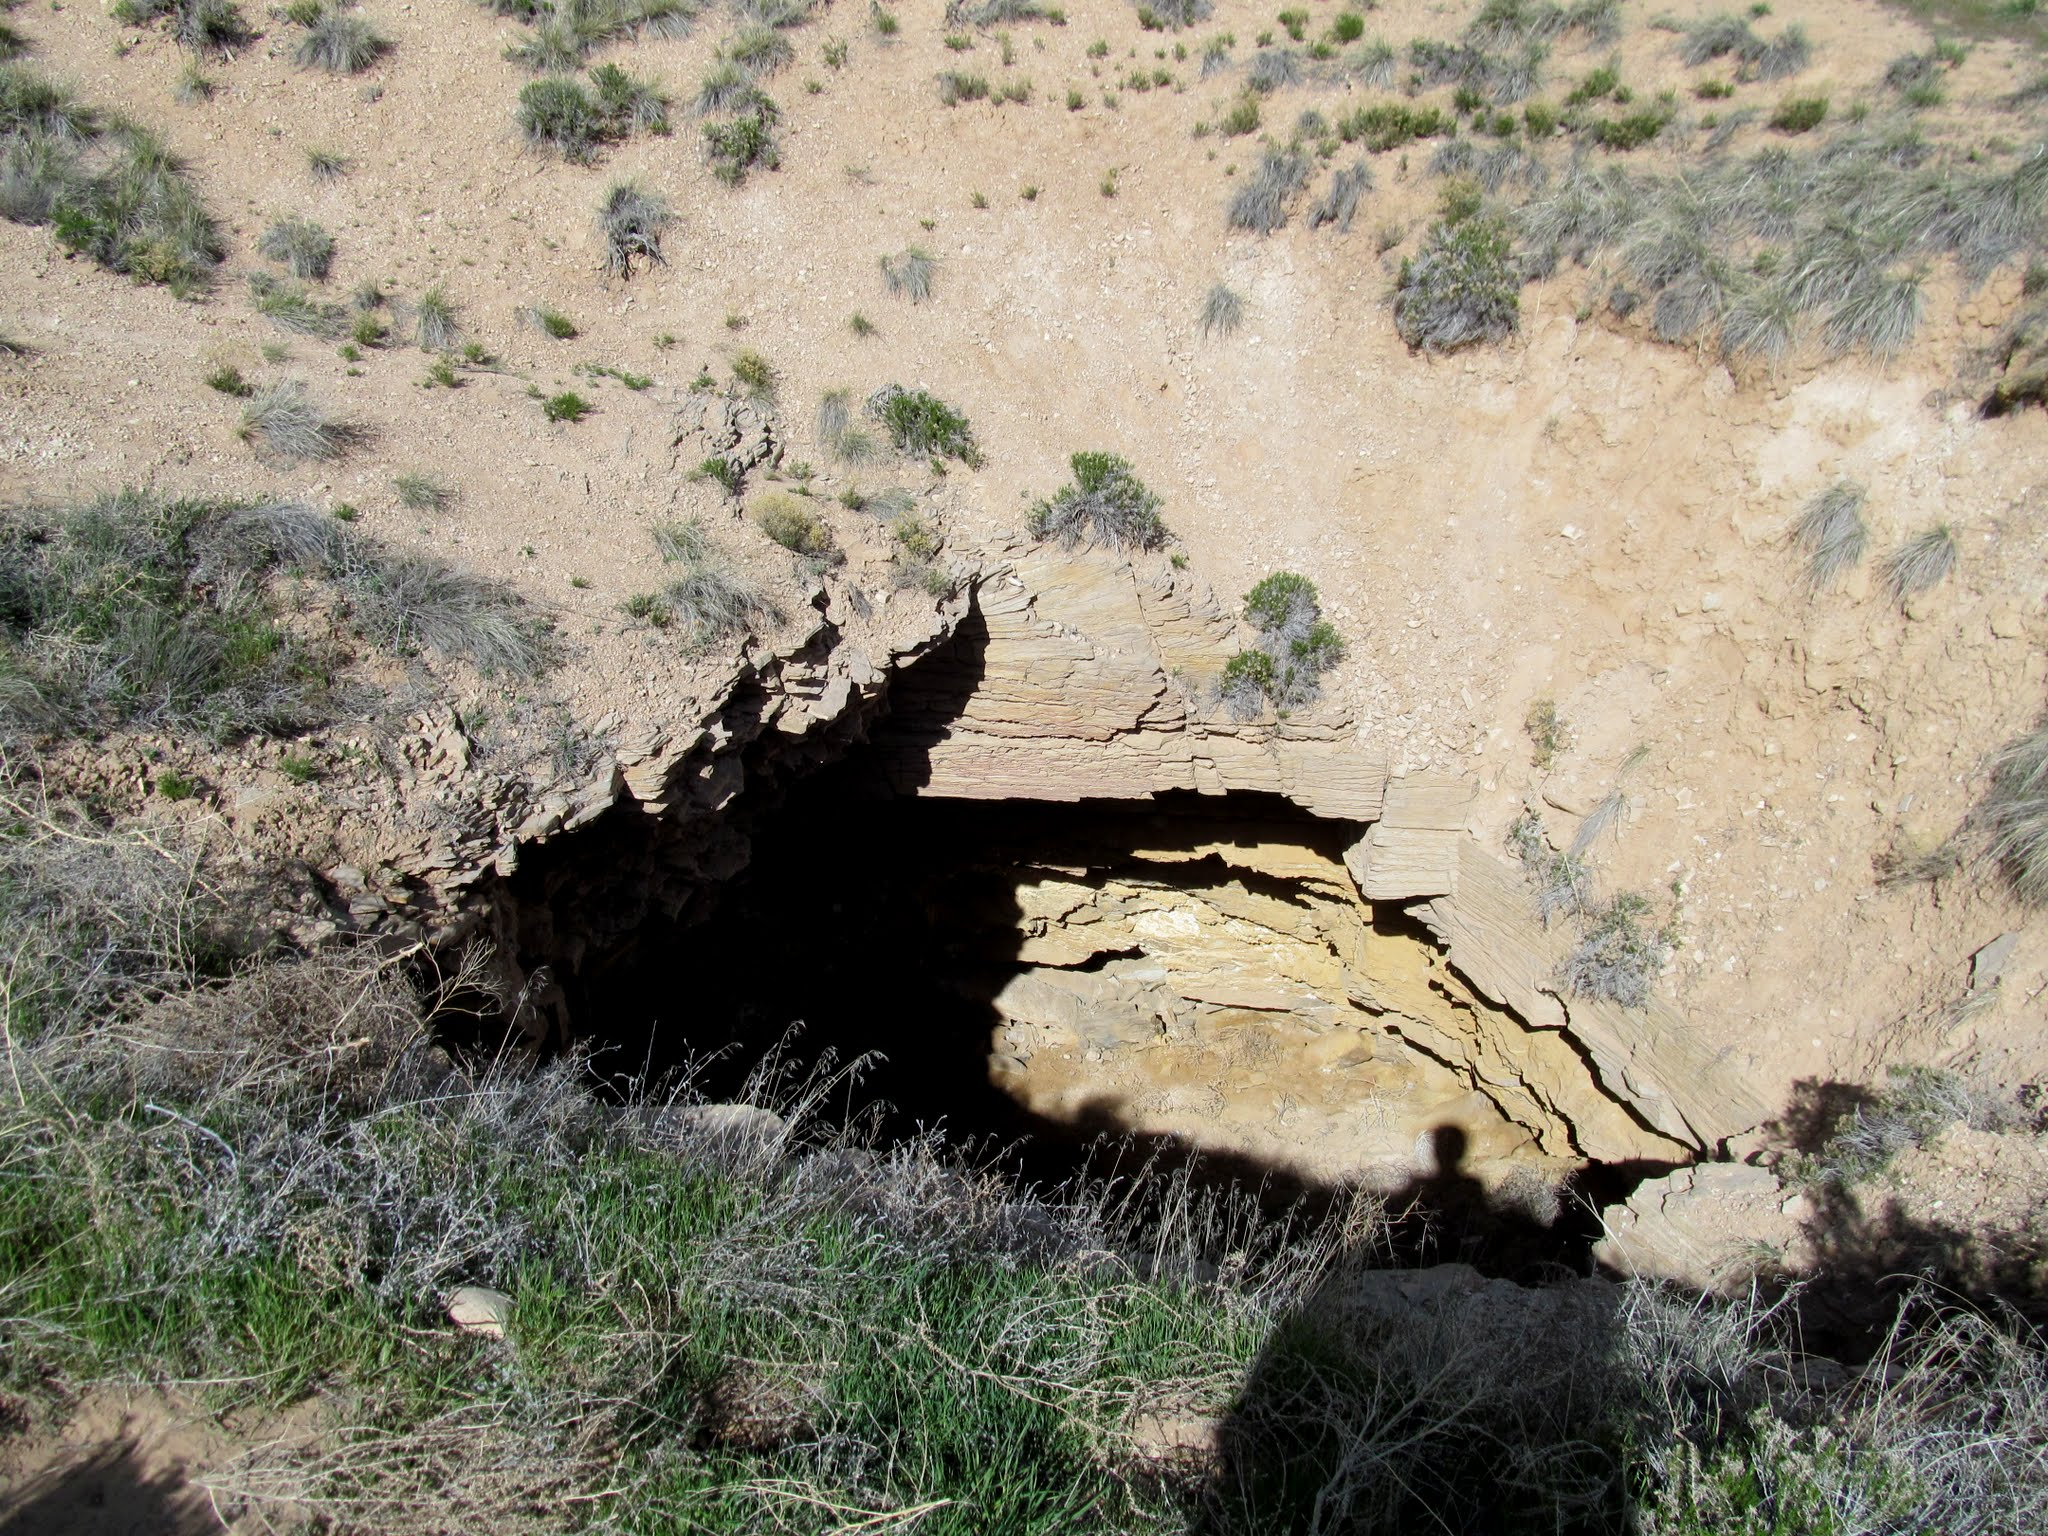 Photo: The Sinkhole